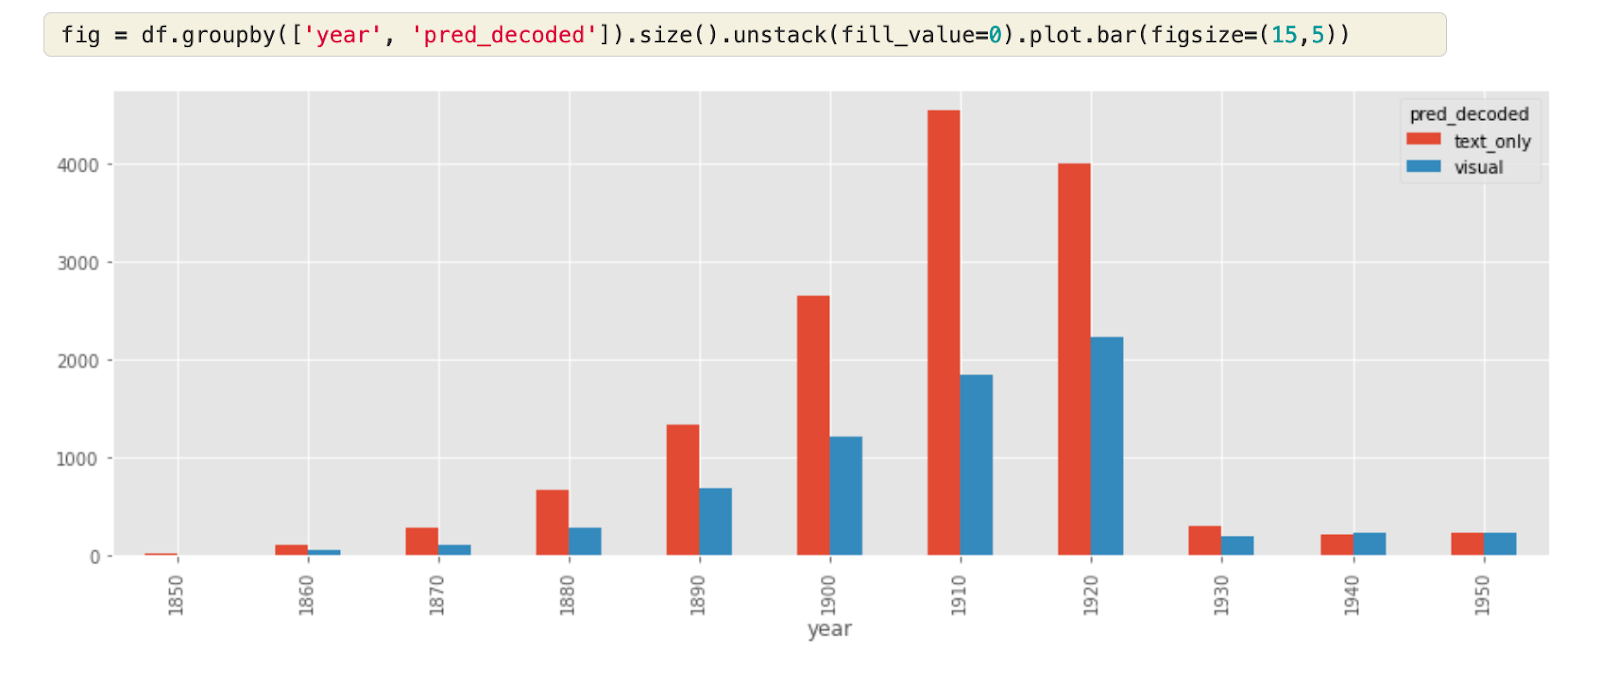 A screenshot of a bar chart growing over time before decreasing. The chart shows the relative proption of visual versus non-visual adverts over time.